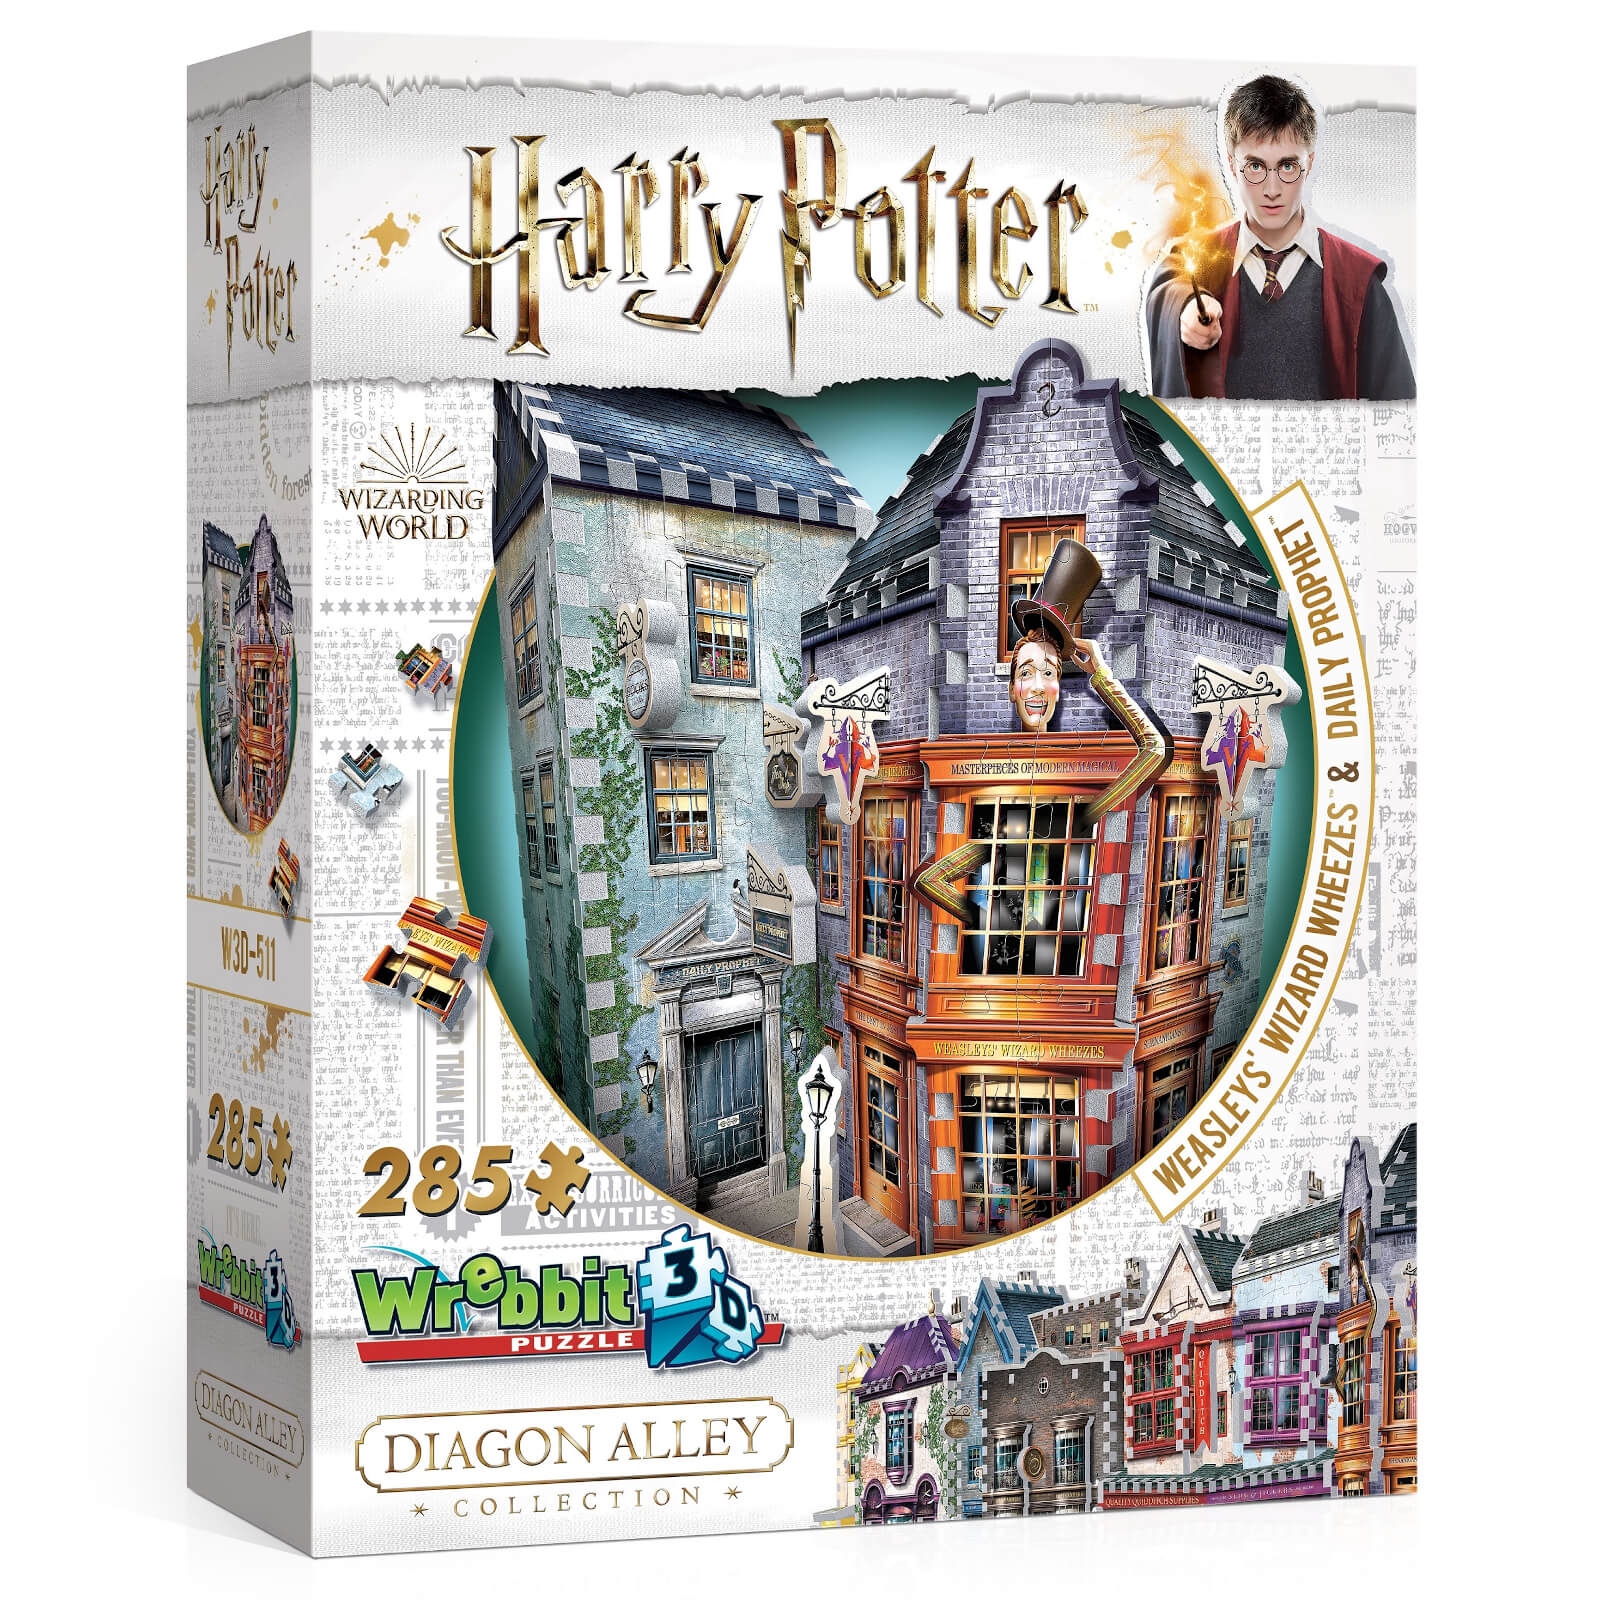 Image of Diagon Alley Collection Weasley Wizards Wheezes 3D Puzzle (285 Pieces)